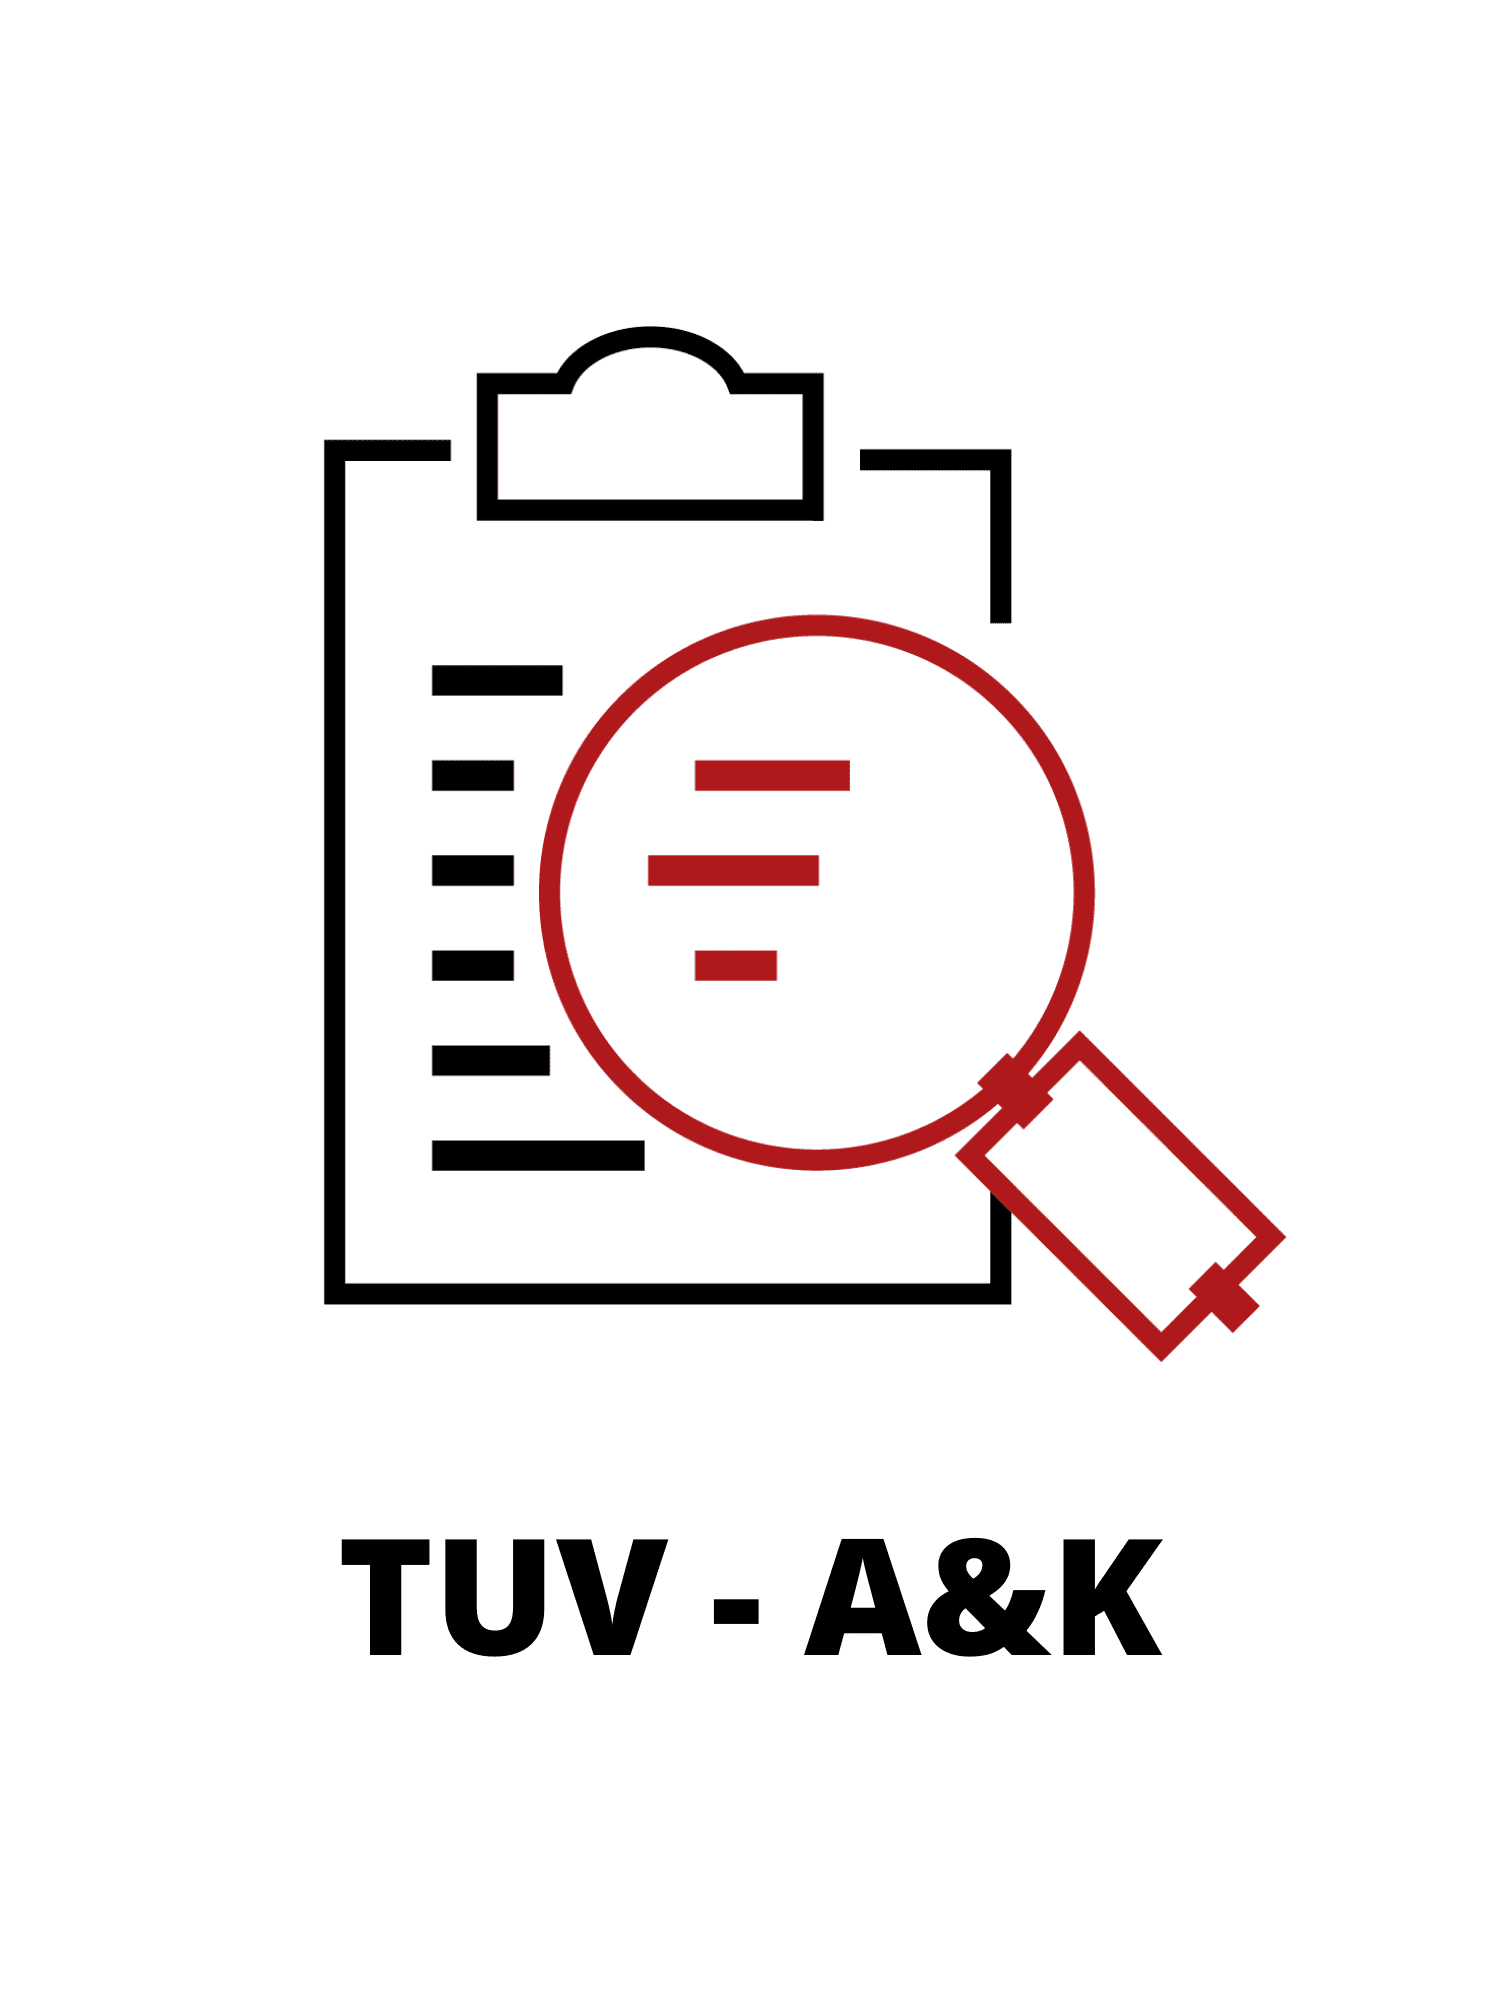 ROAD USE TUV – A&K